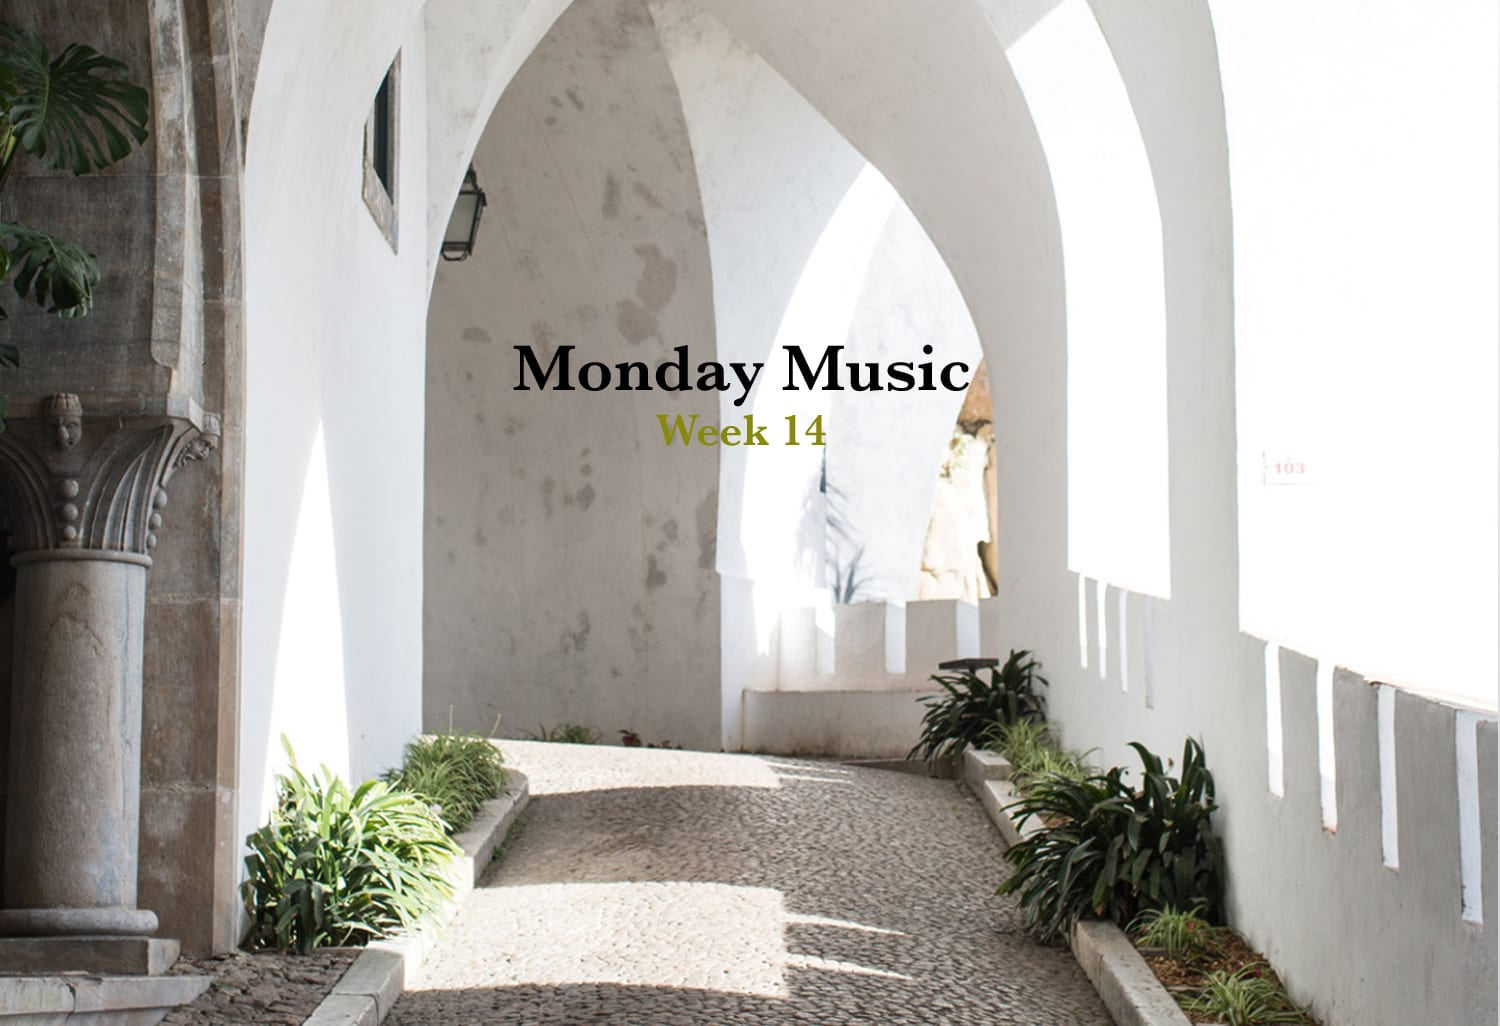 Monday Music Week 14